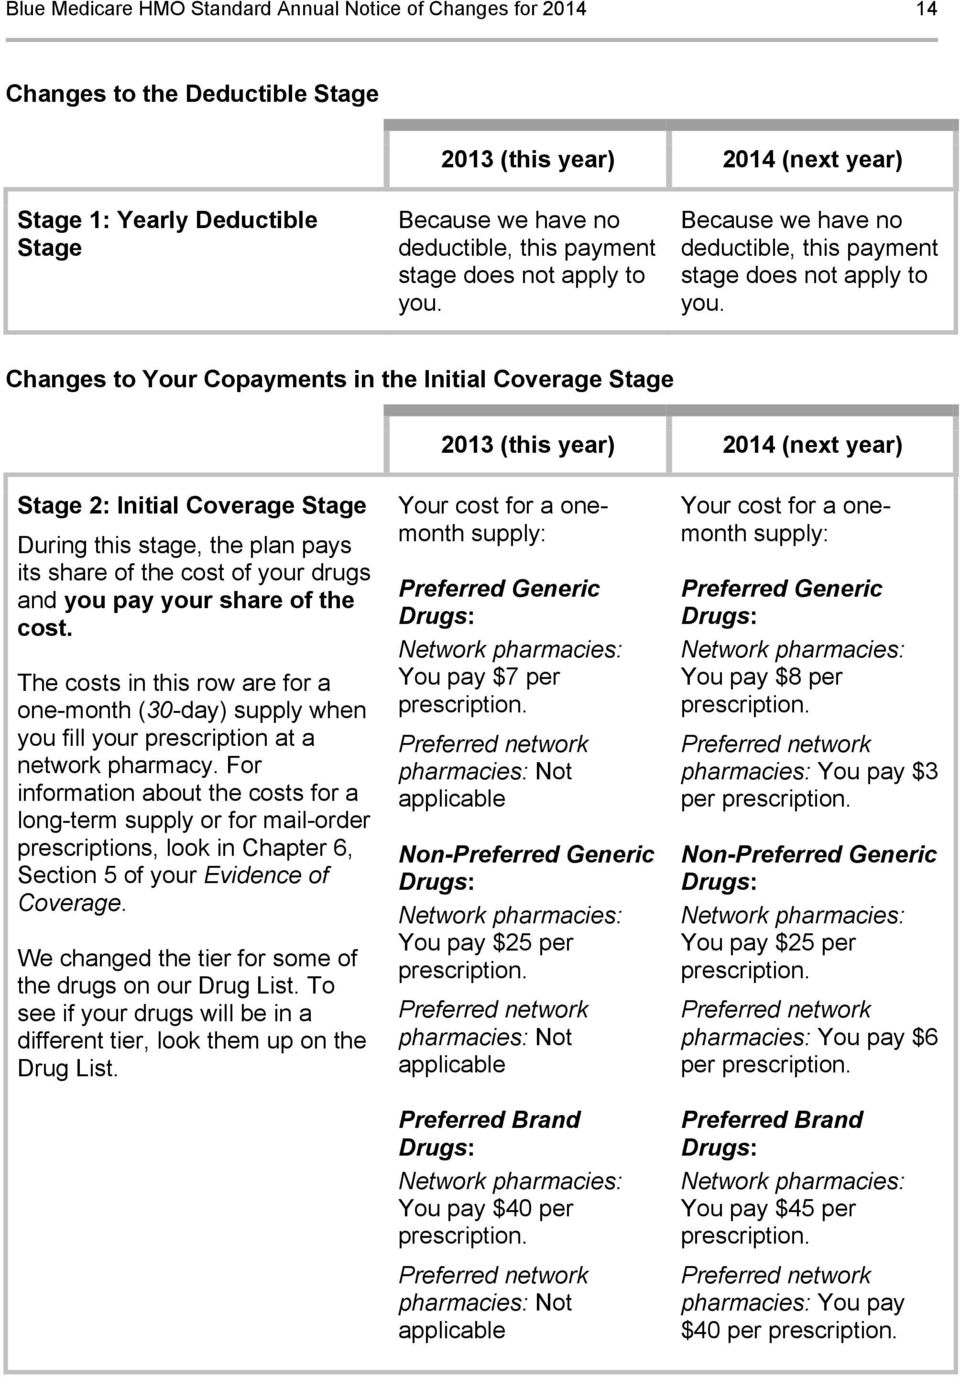 Changes to Your Copayments in the Initial Coverage Stage Stage 2: Initial Coverage Stage During this stage, the plan pays its share of the cost of your drugs and you pay your share of the cost.